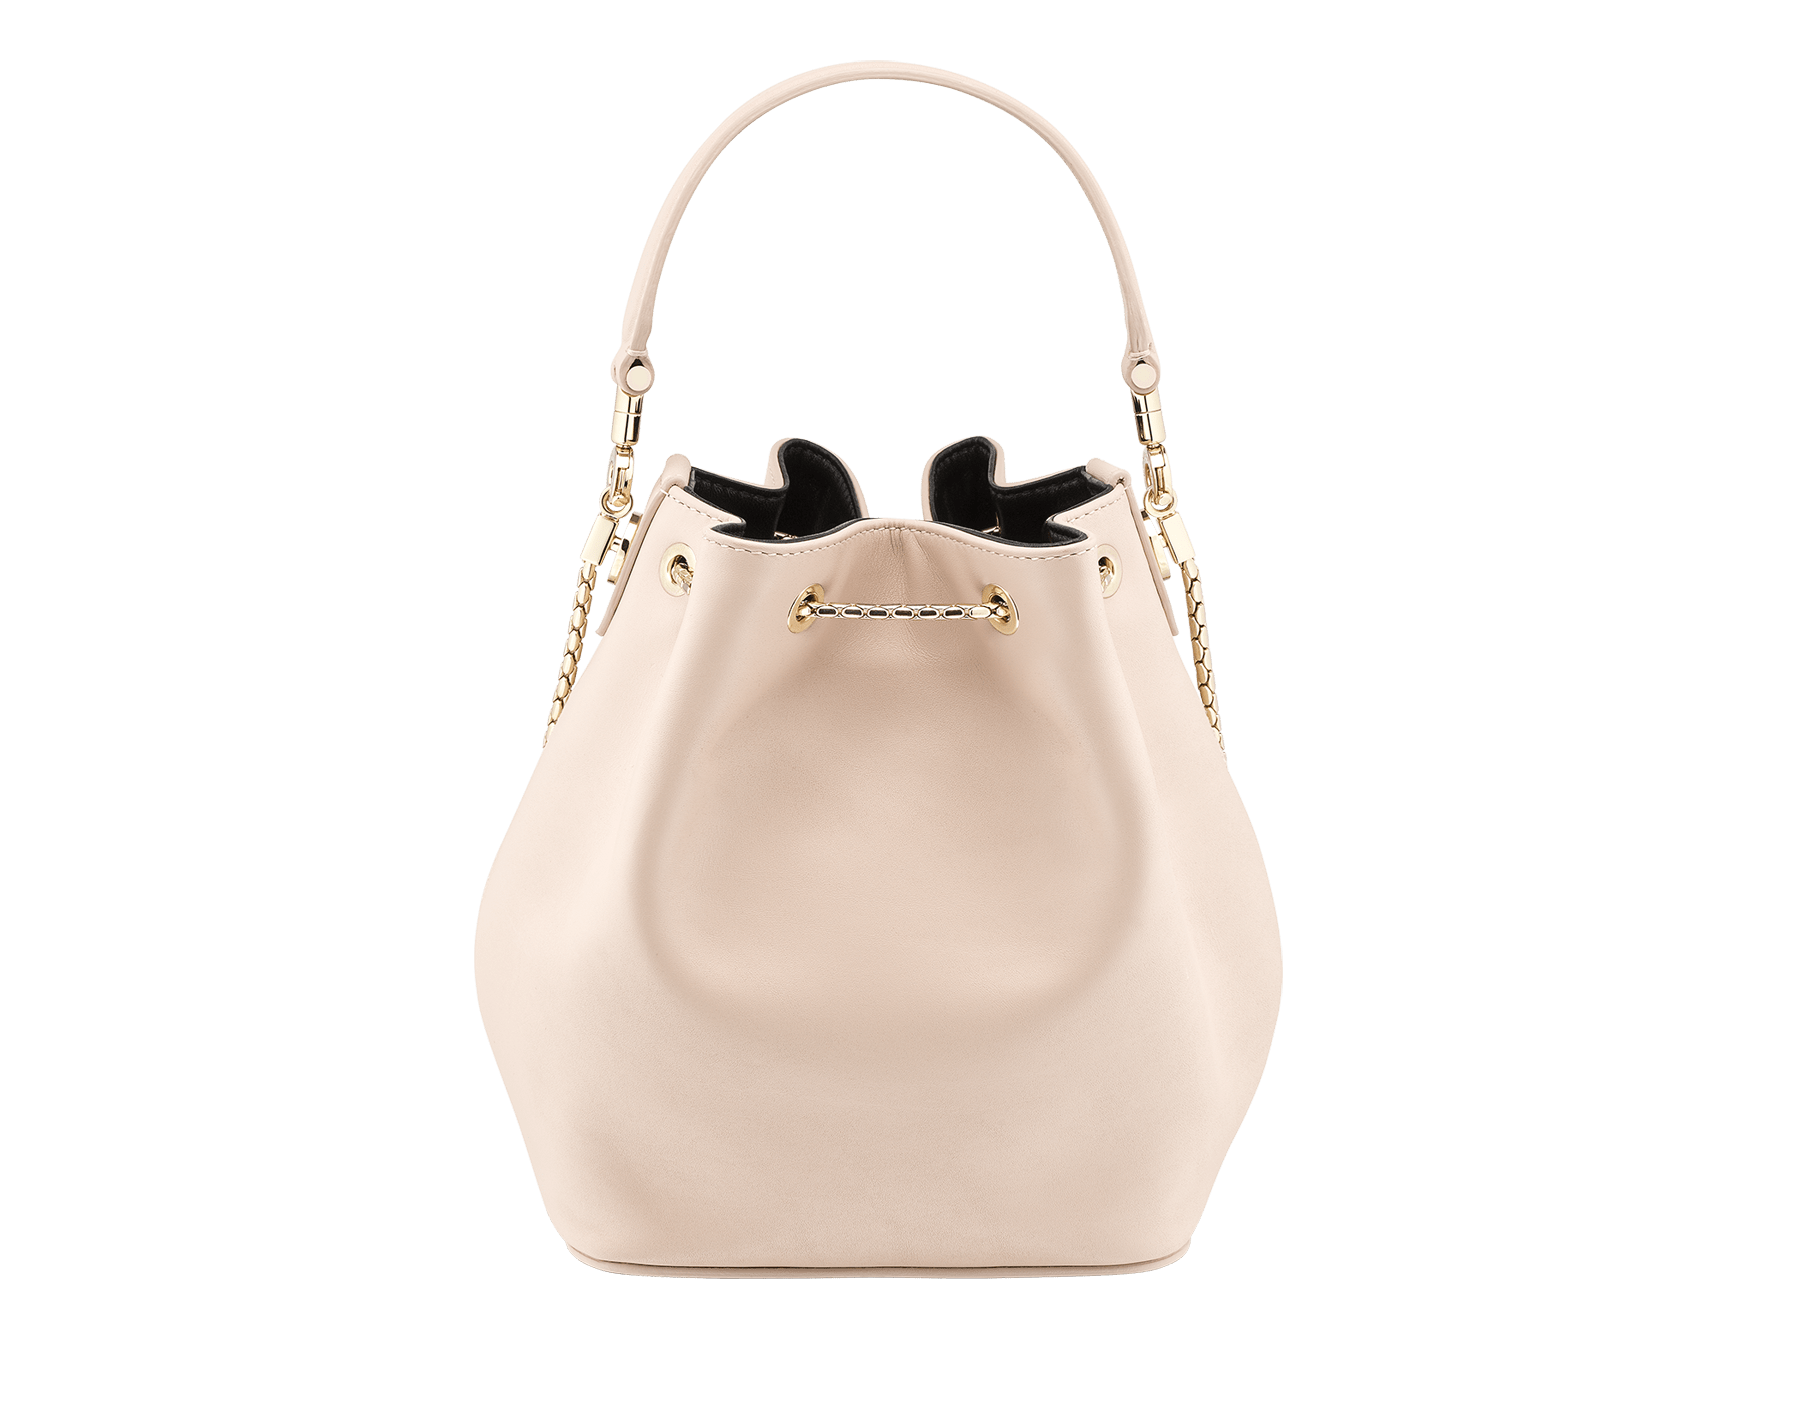 Bucket Serpenti Forever in glacier turquoise smooth calf leather and crystal rose nappa internal lining. Hardware in light gold plated brass and snakehead closure in black and white enamel, with eyes in black onyx. 934-CLb image 3